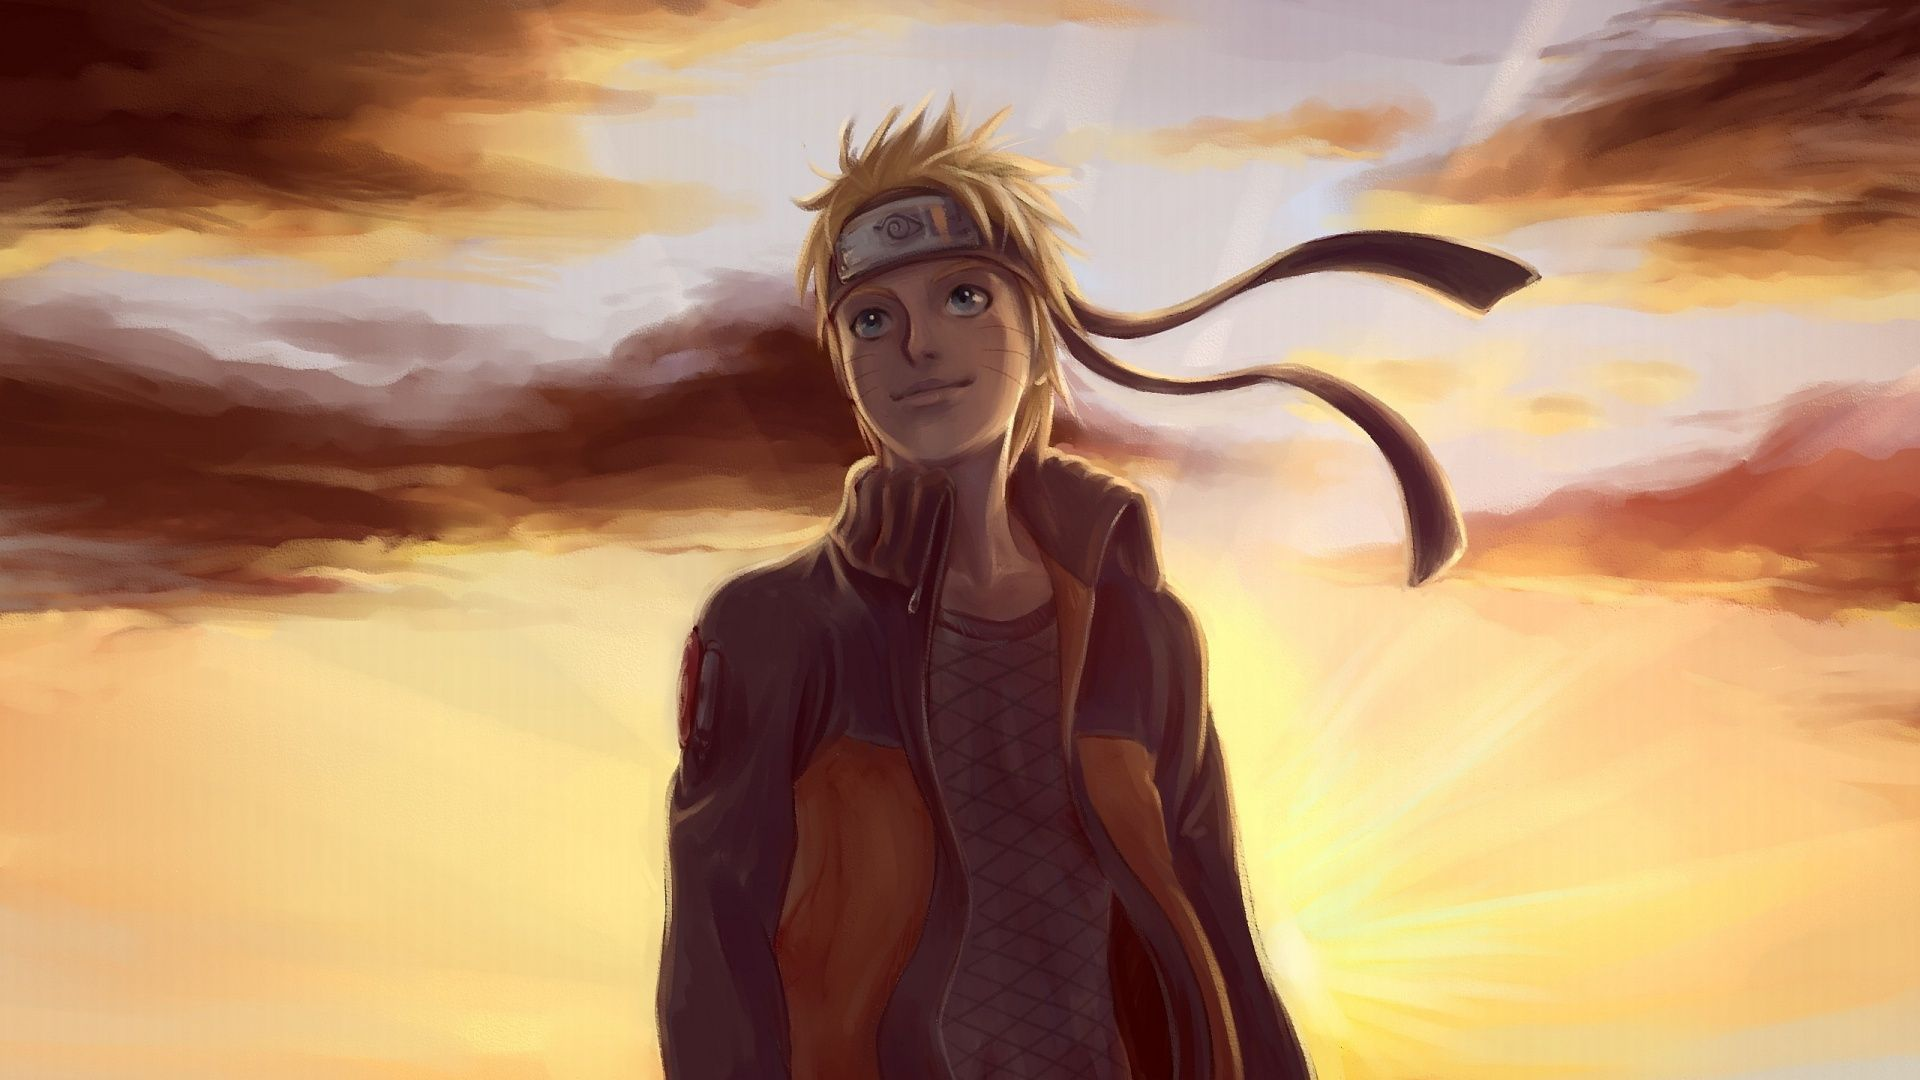 Wallpaper download boy - 1920x1080 Naruto Boy Wallpaper